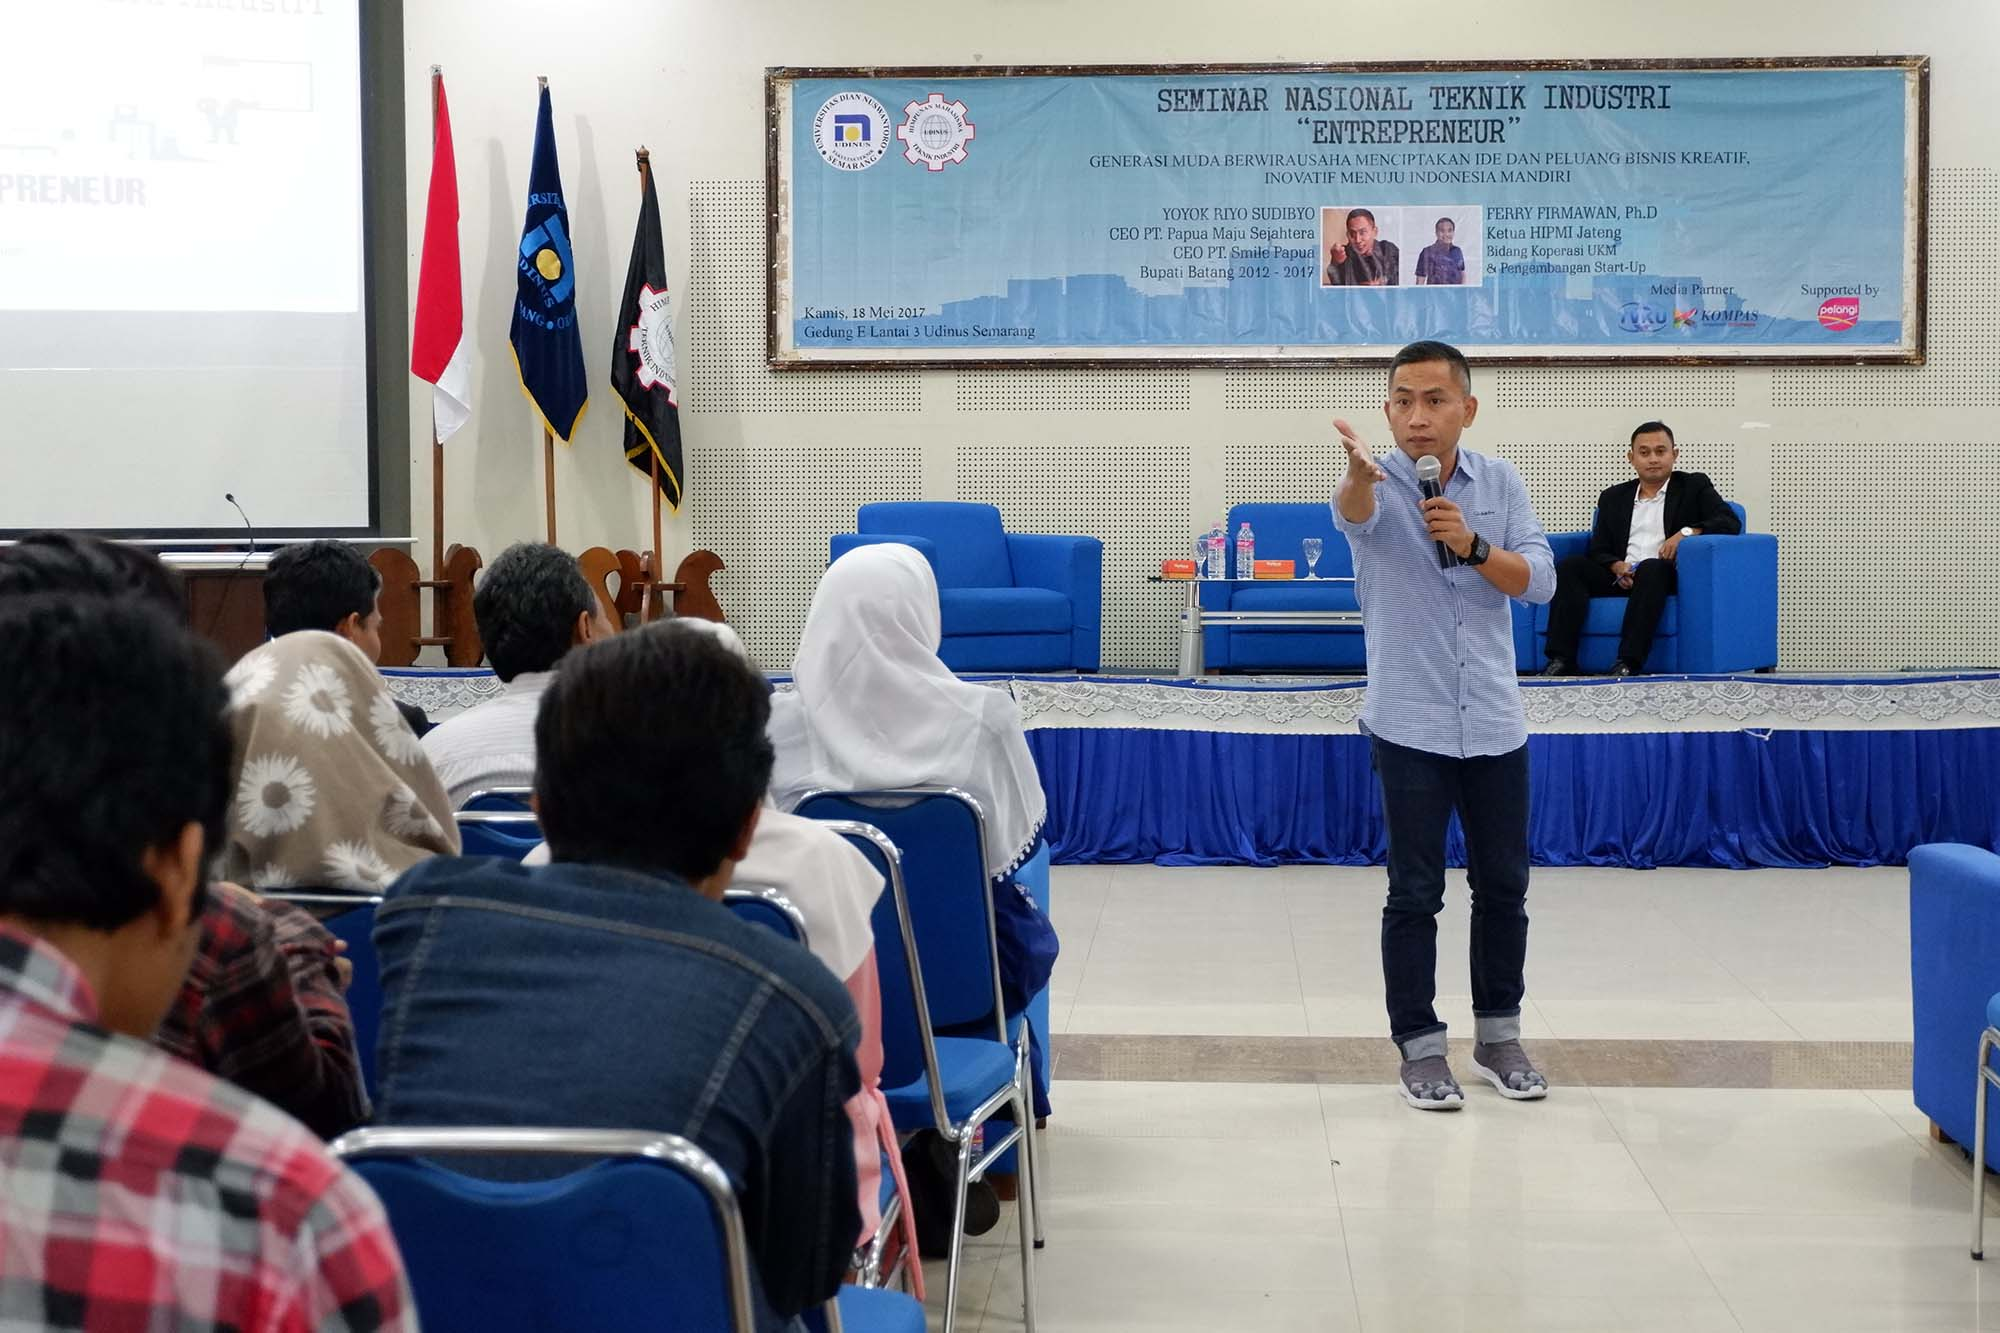 THE ENTREPRENEUR SEMINAR, UDINUS HMTEKIN PRESENTS EX-REGENT OF BATANG